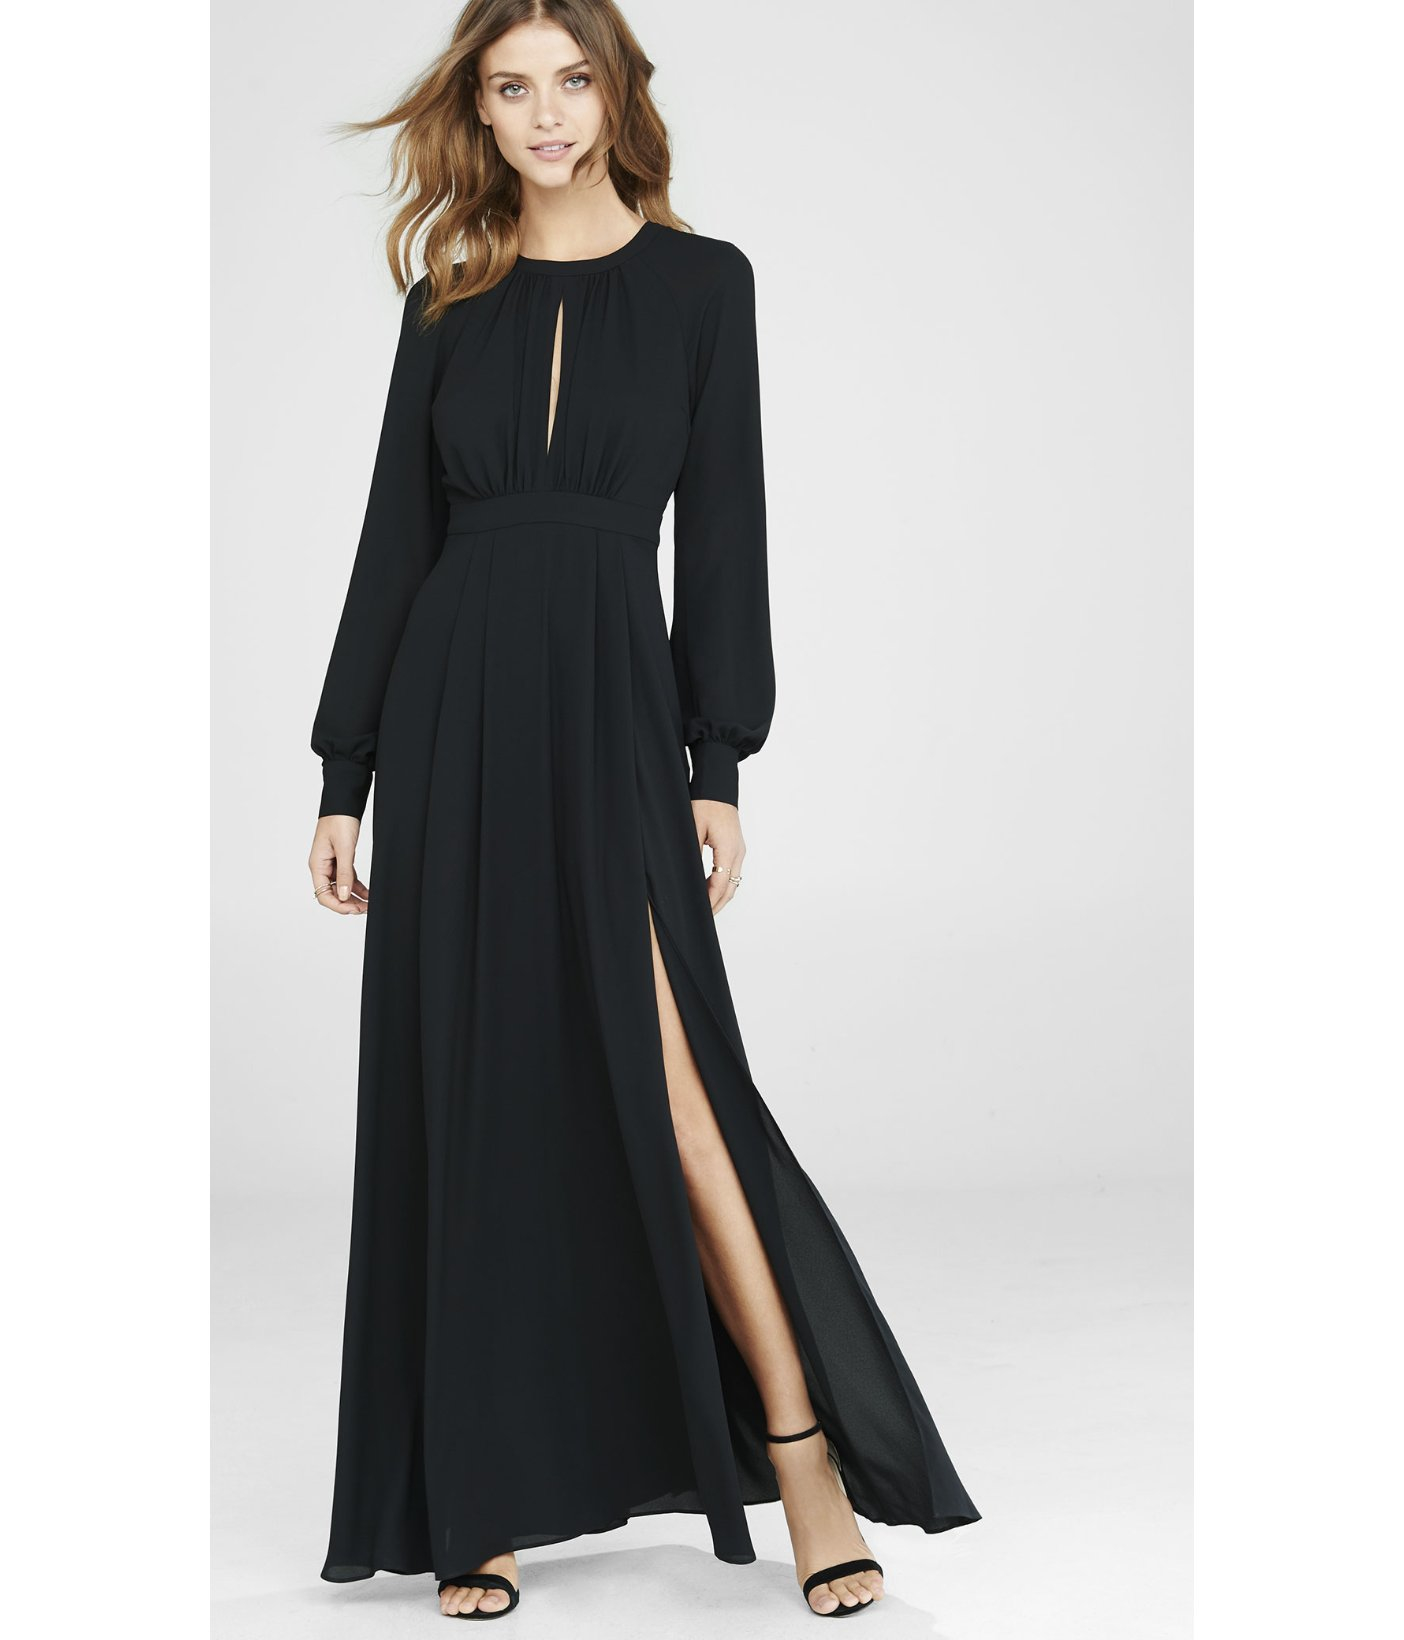 Express Black Poet Sleeve Maxi Dress in Black | Lyst